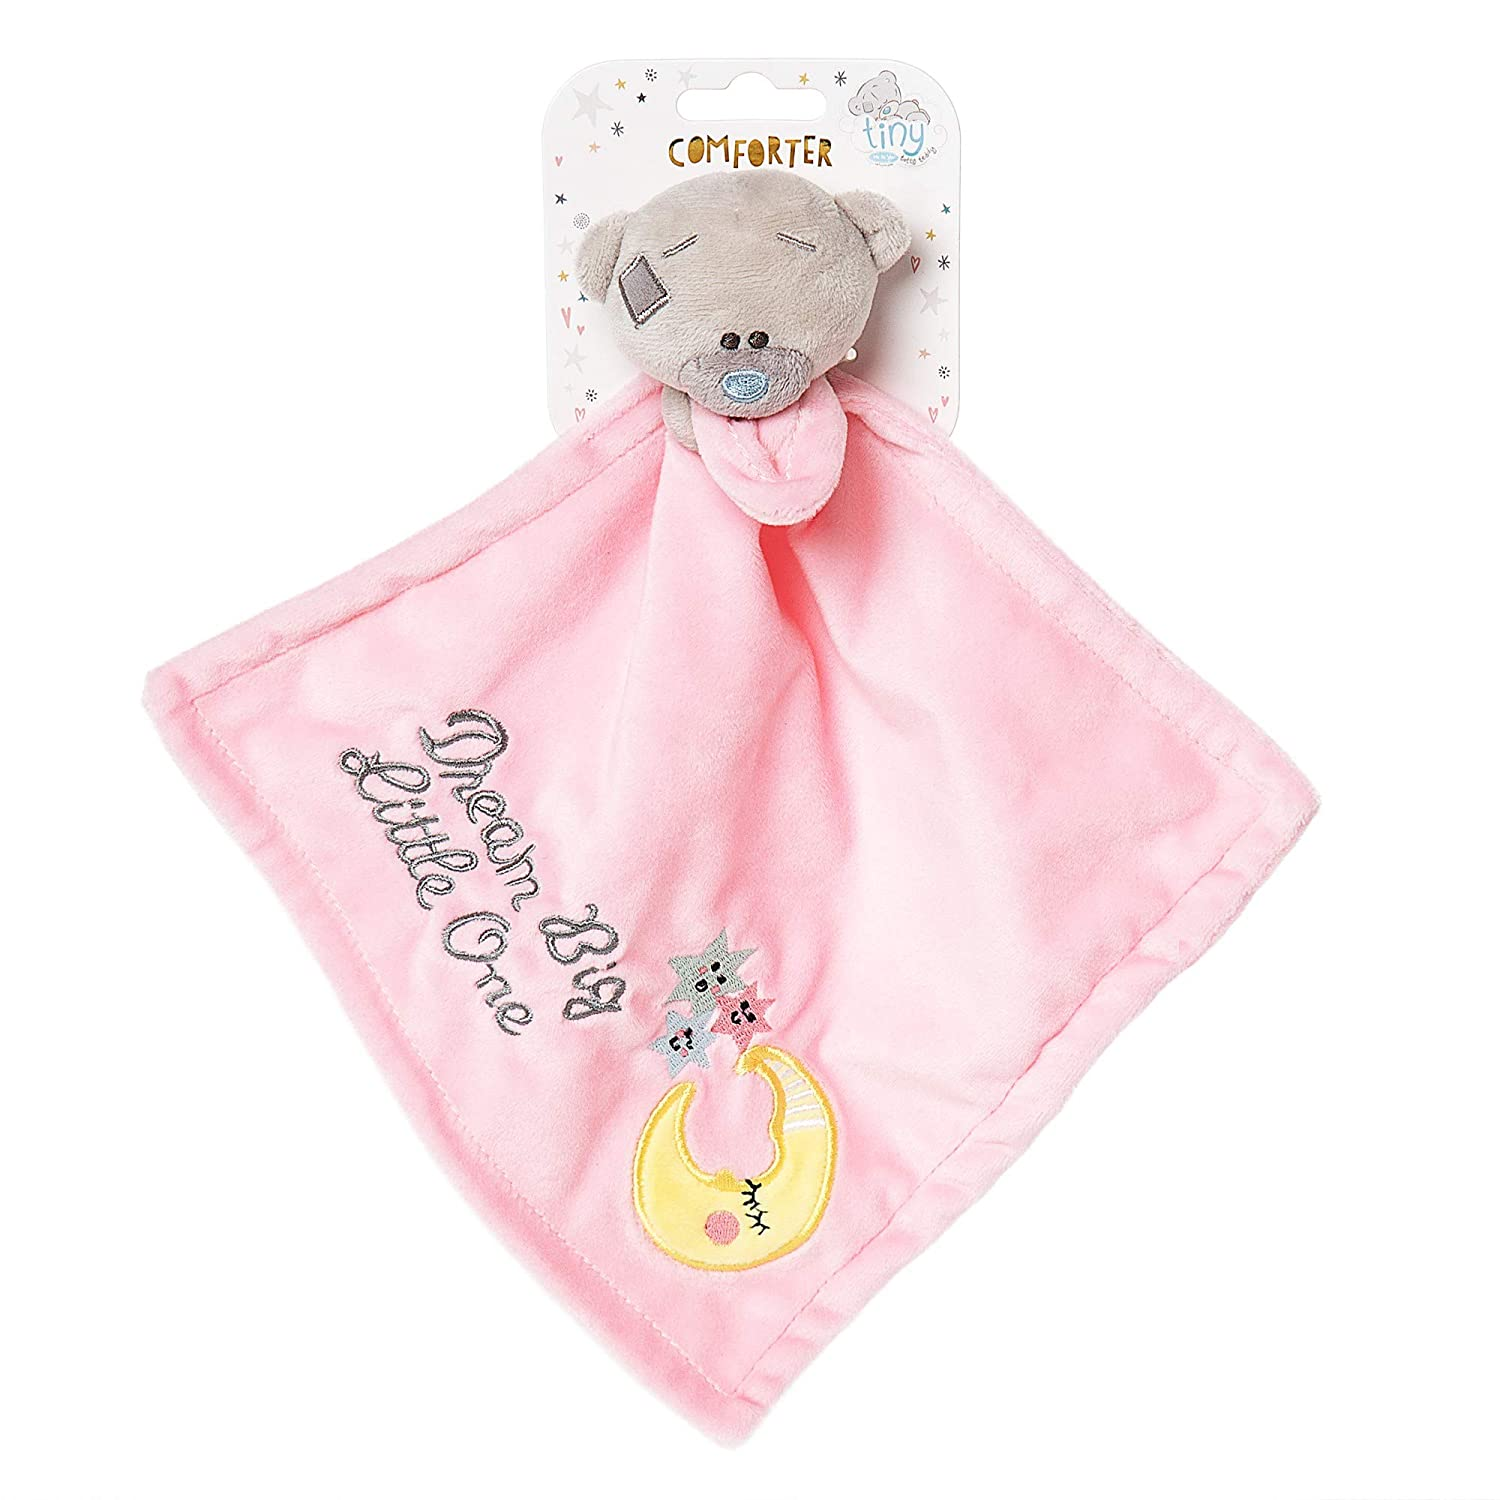 Agb92019 Me To You Tiny Tatty Teddy Rose Doudou